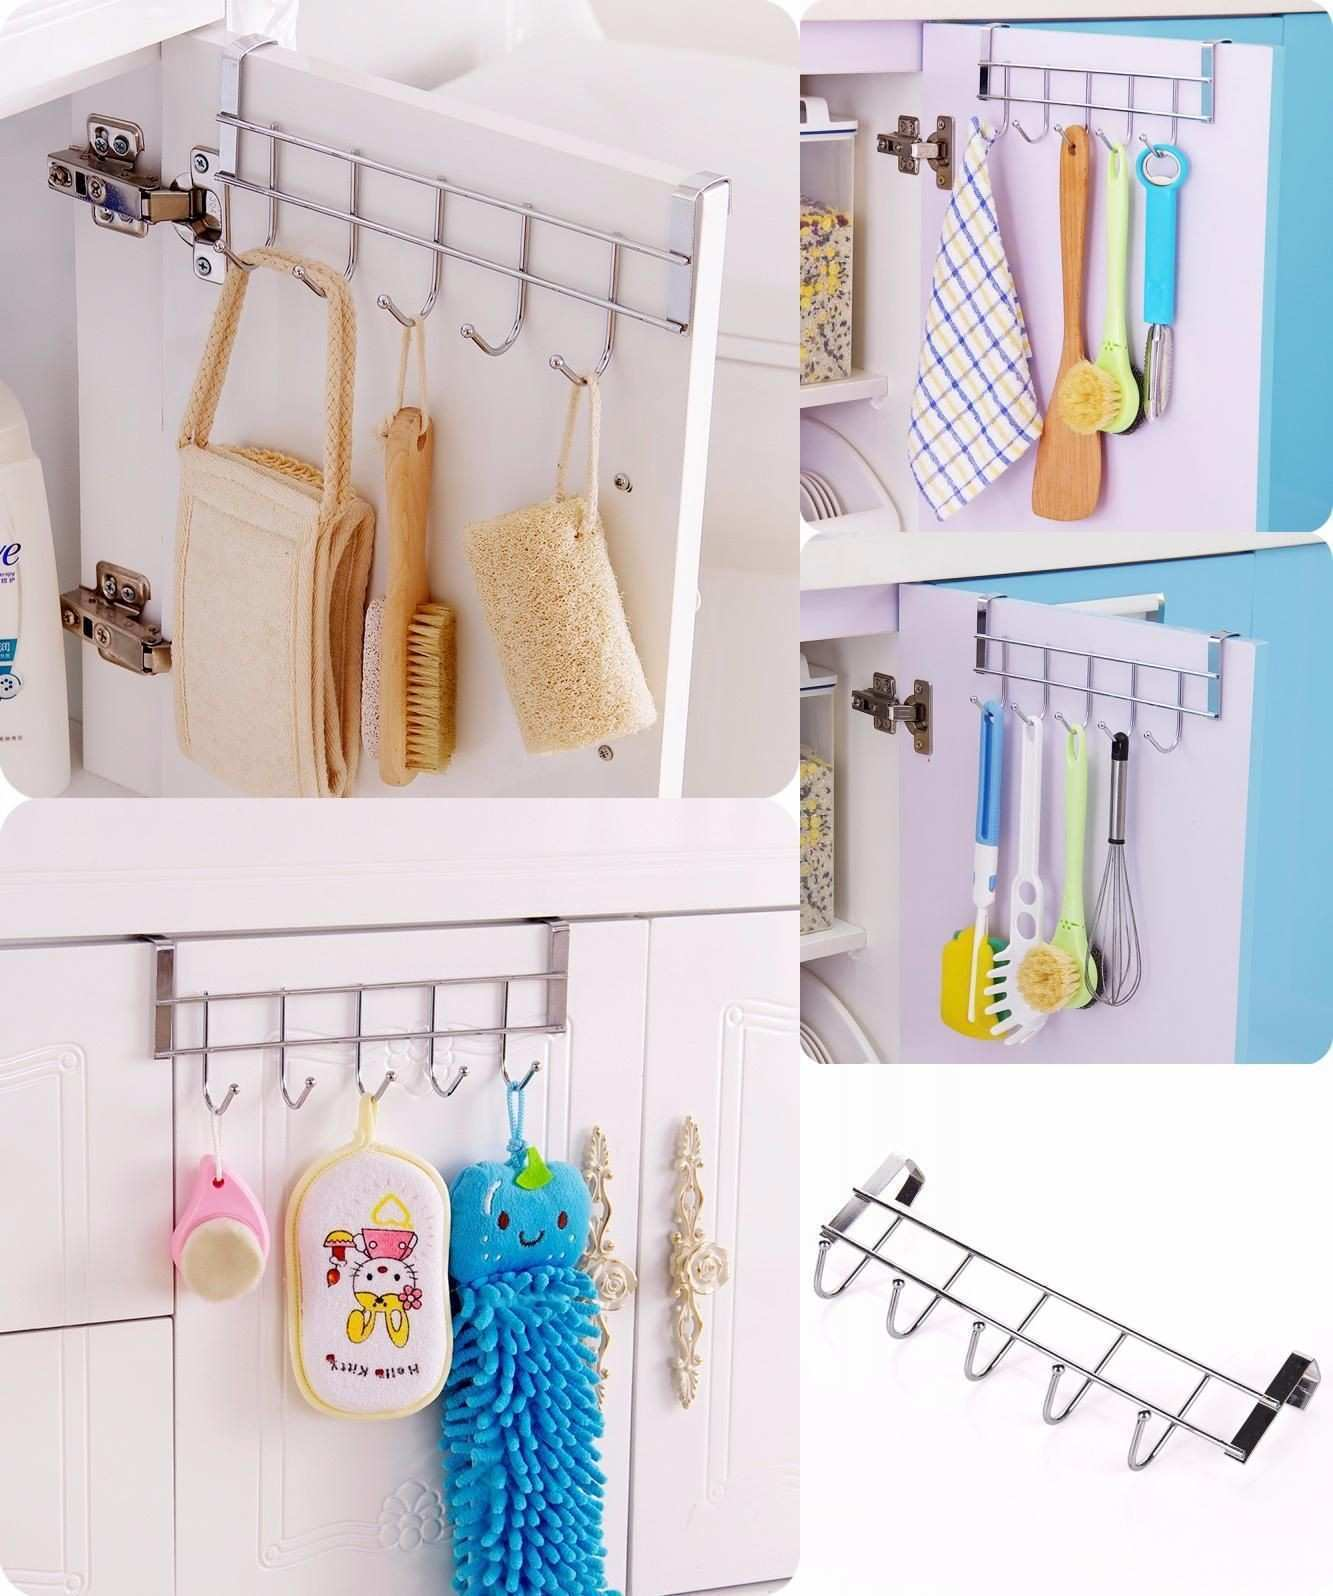 Picture Hanging Hooks Best Of Visit to Buy] Stainless Steel Bathroom Kitchen organizer Hanger